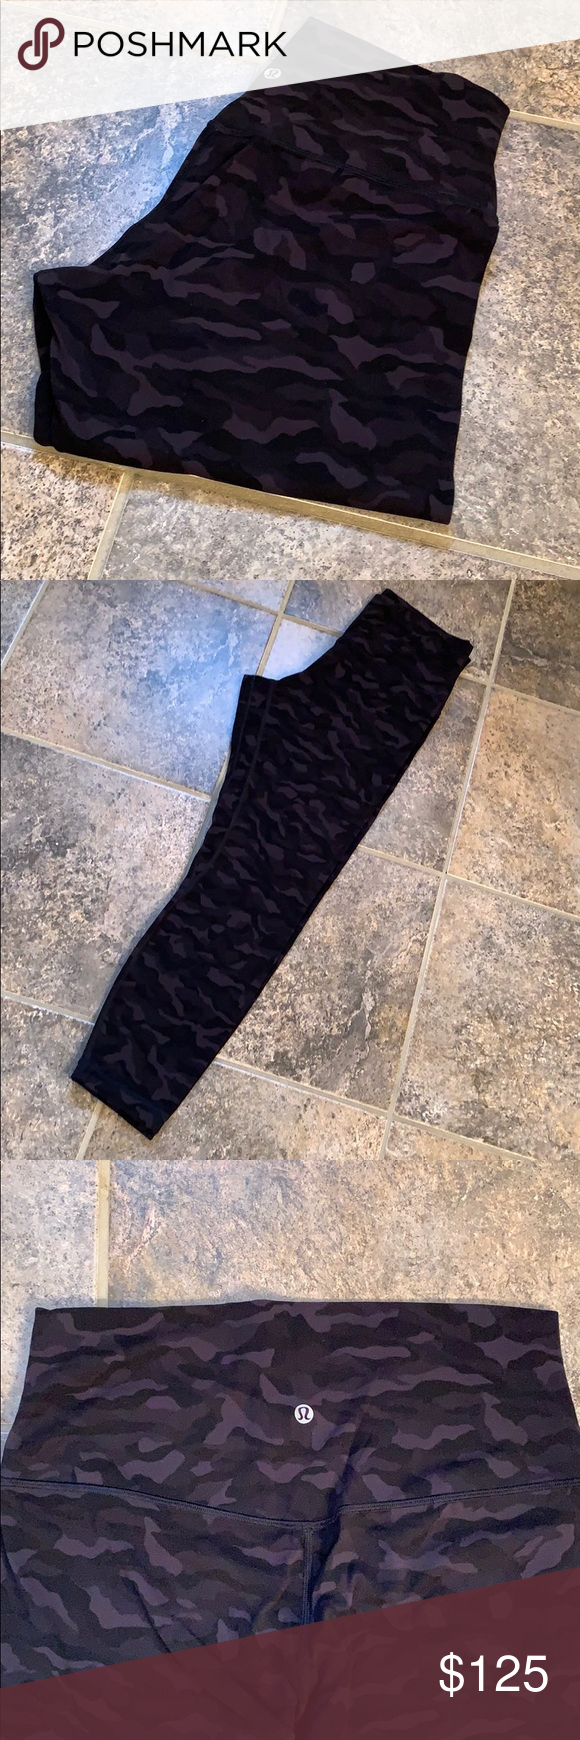 Lululemon Incognito Size 10 Black Grey Align Lululemon Rare Incognito Size 10 Black Grey Align 25 Inseam In Wo Black And Grey Leggings Are Not Pants Lululemon